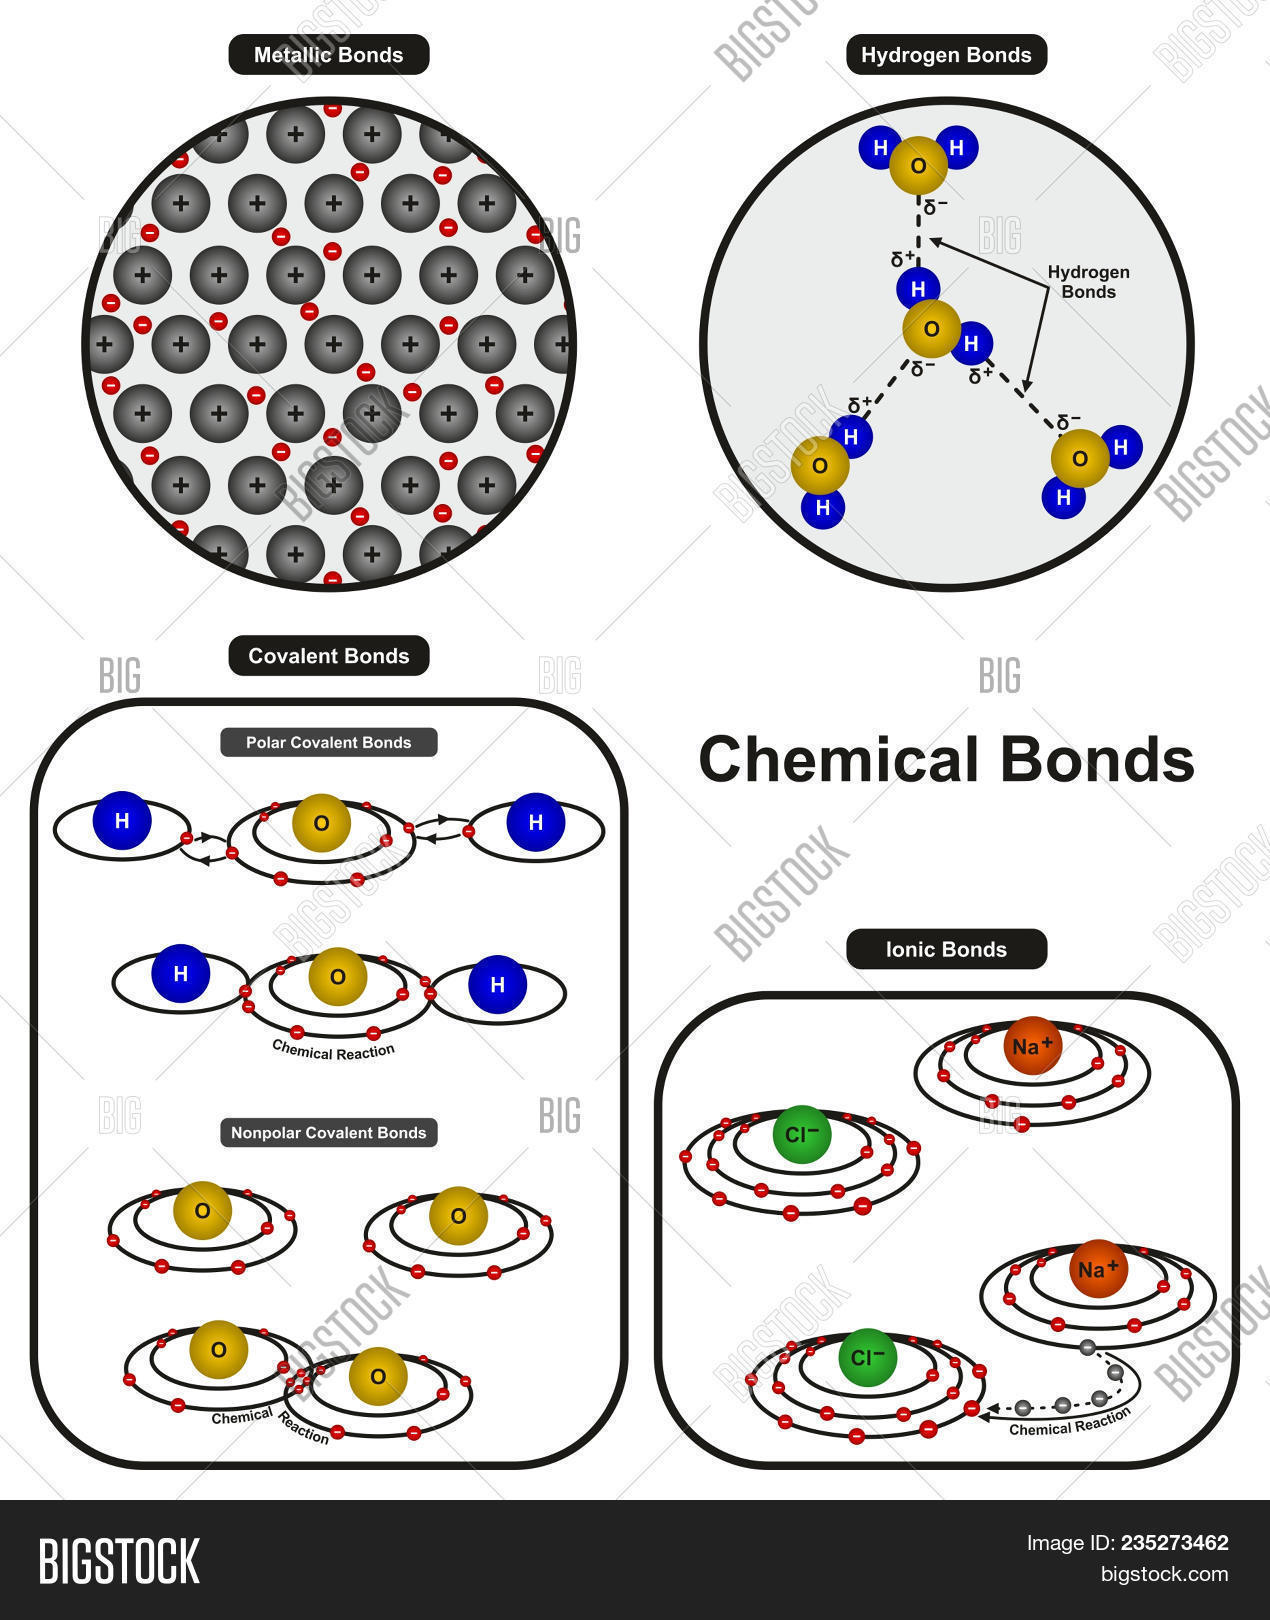 Chemical Bonds Image Amp Photo Free Trial